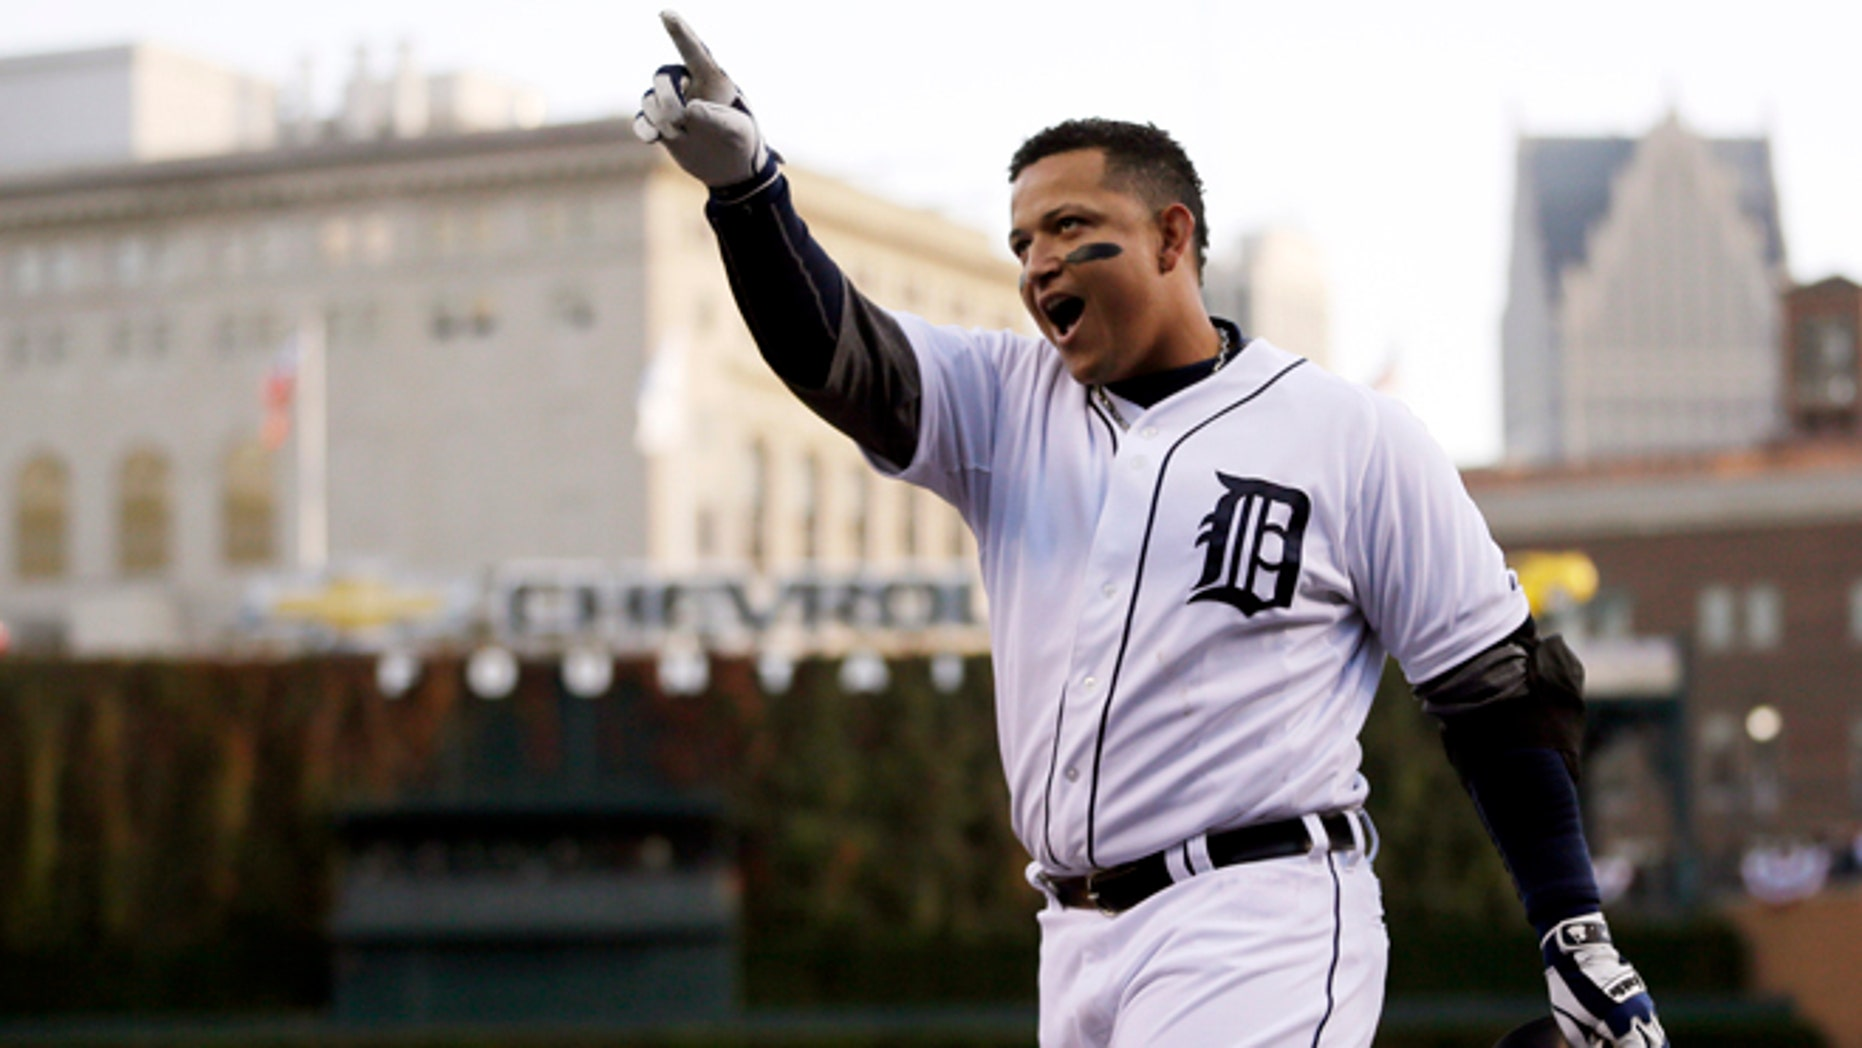 Oct. 18, 2012: In this file photo, Detroit Tigers' Miguel Cabrera celebrates after hitting a two-run home run during the fourth inning of Game 4 of the American League championship series against the New York Yankees in Detroit.